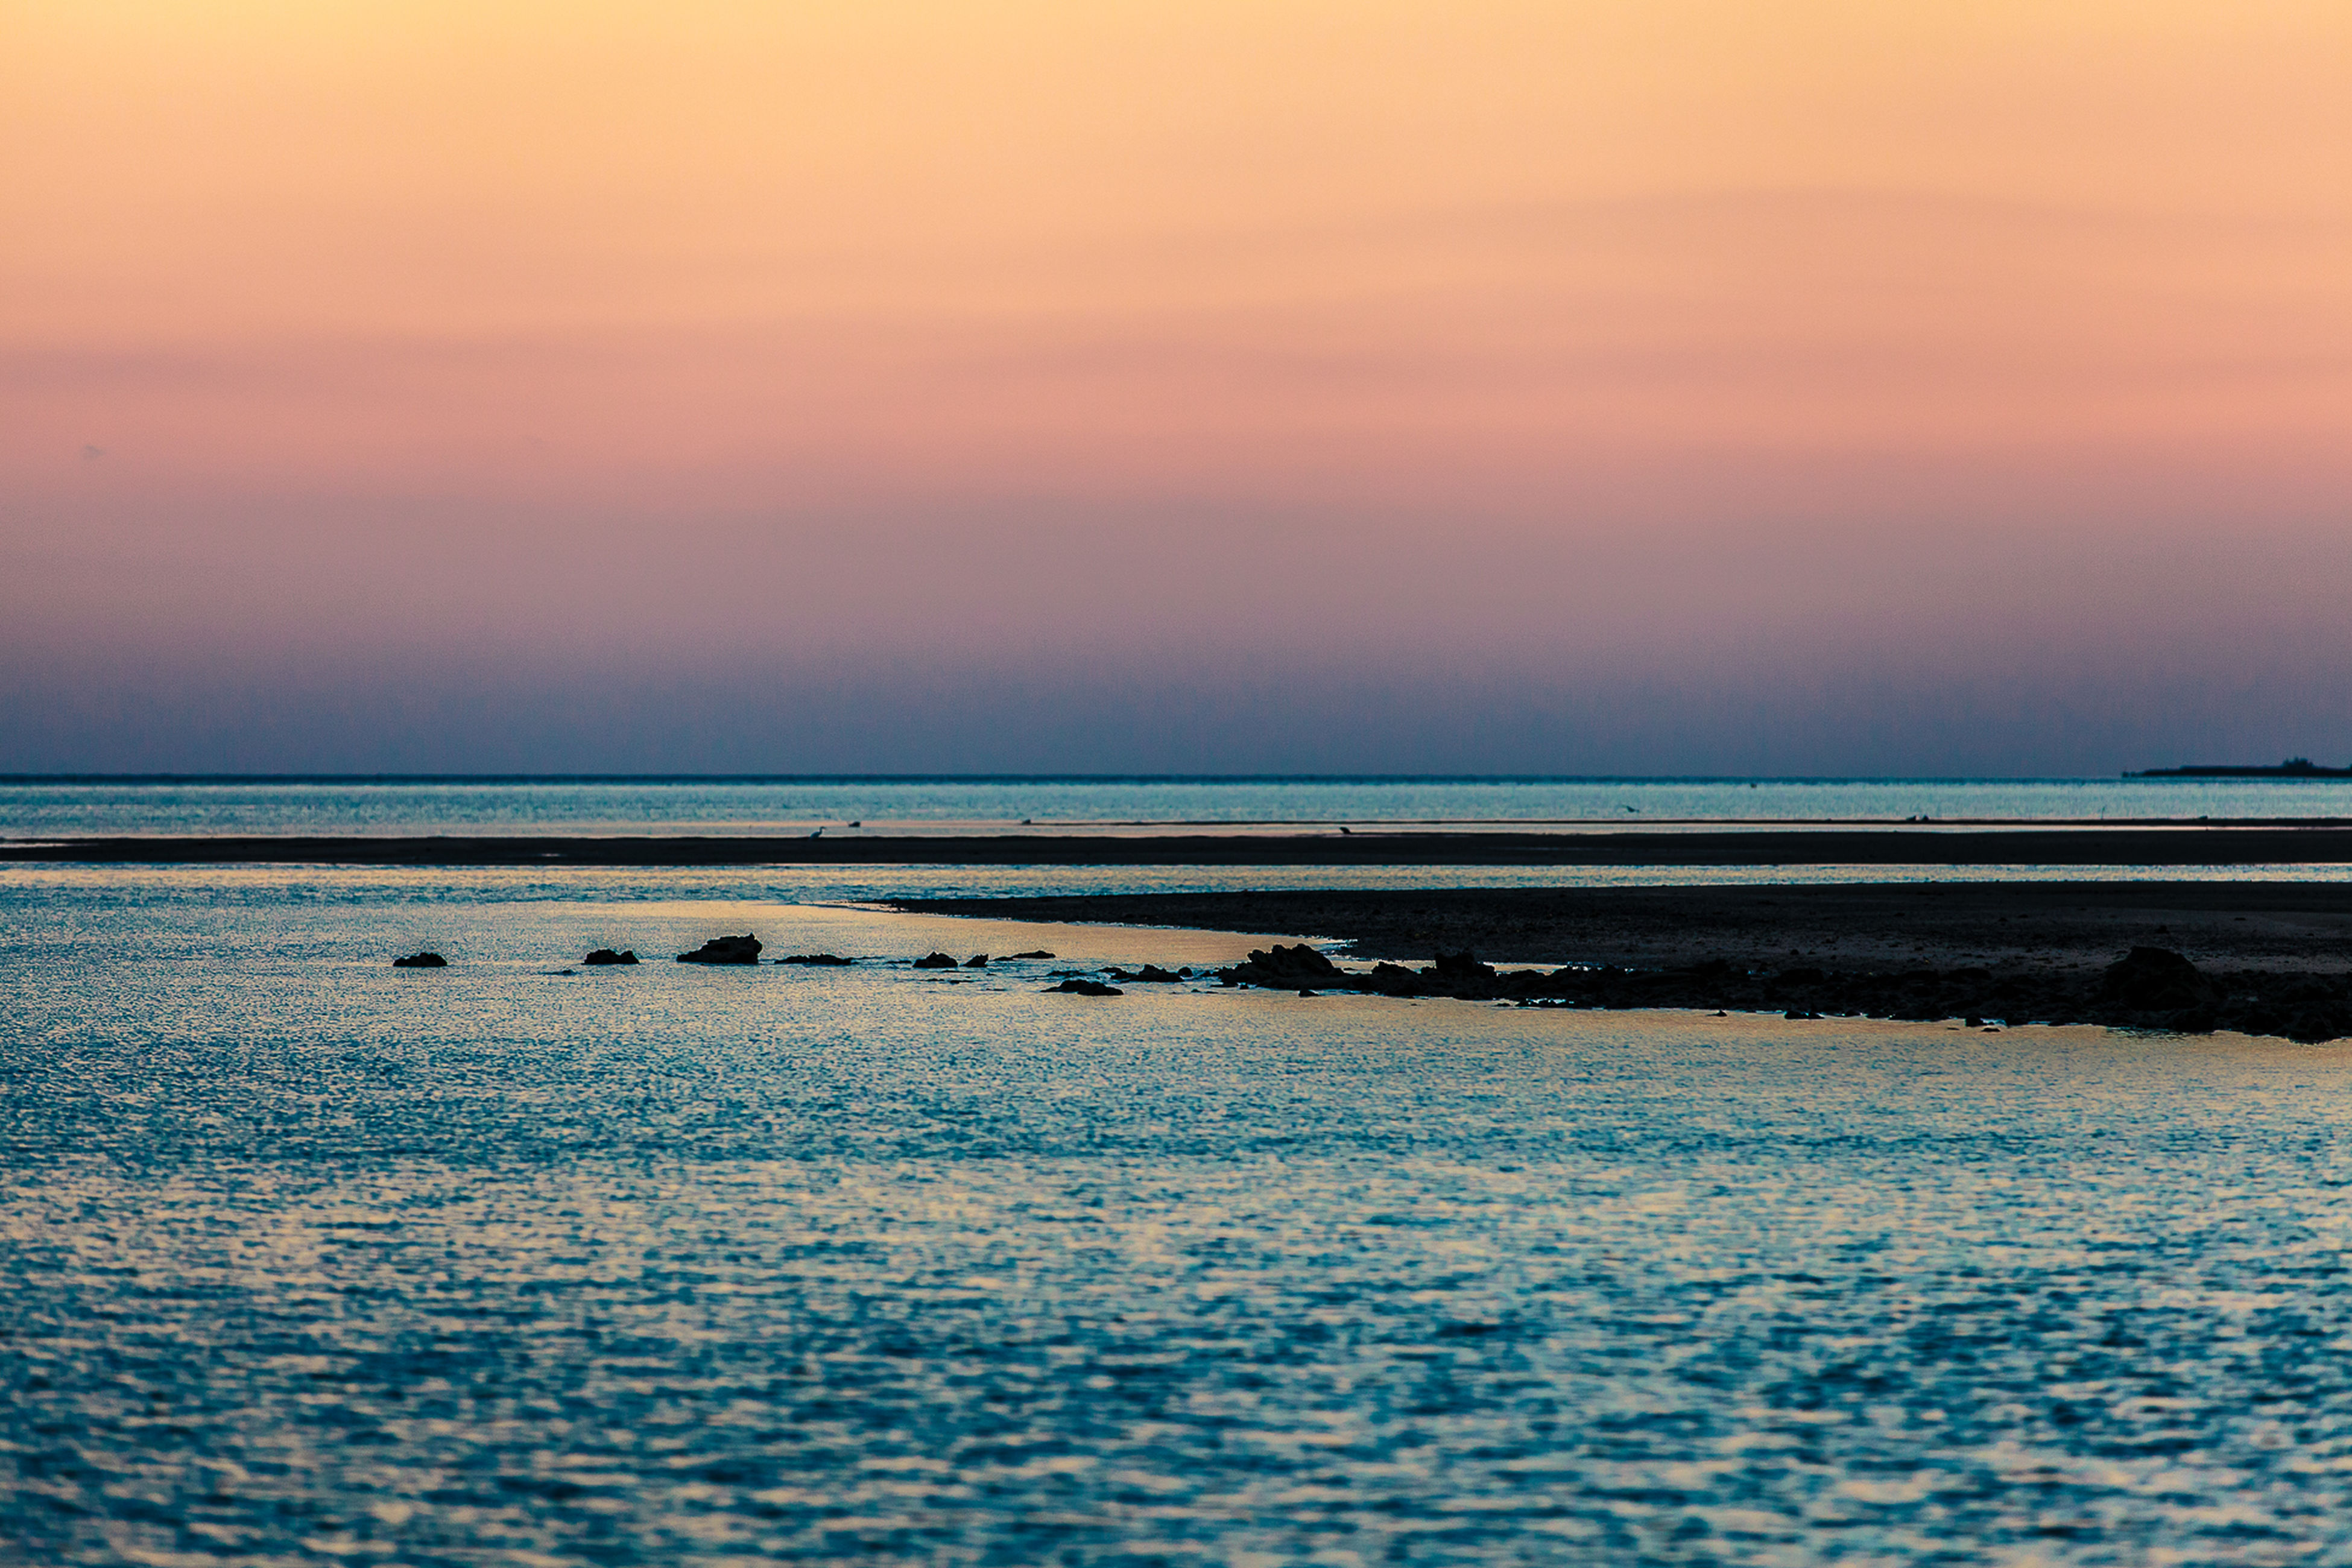 sea, horizon over water, water, sunset, sky, beauty in nature, nature, reflection, tranquility, scenics, beach, tranquil scene, no people, outdoors, day, animal themes